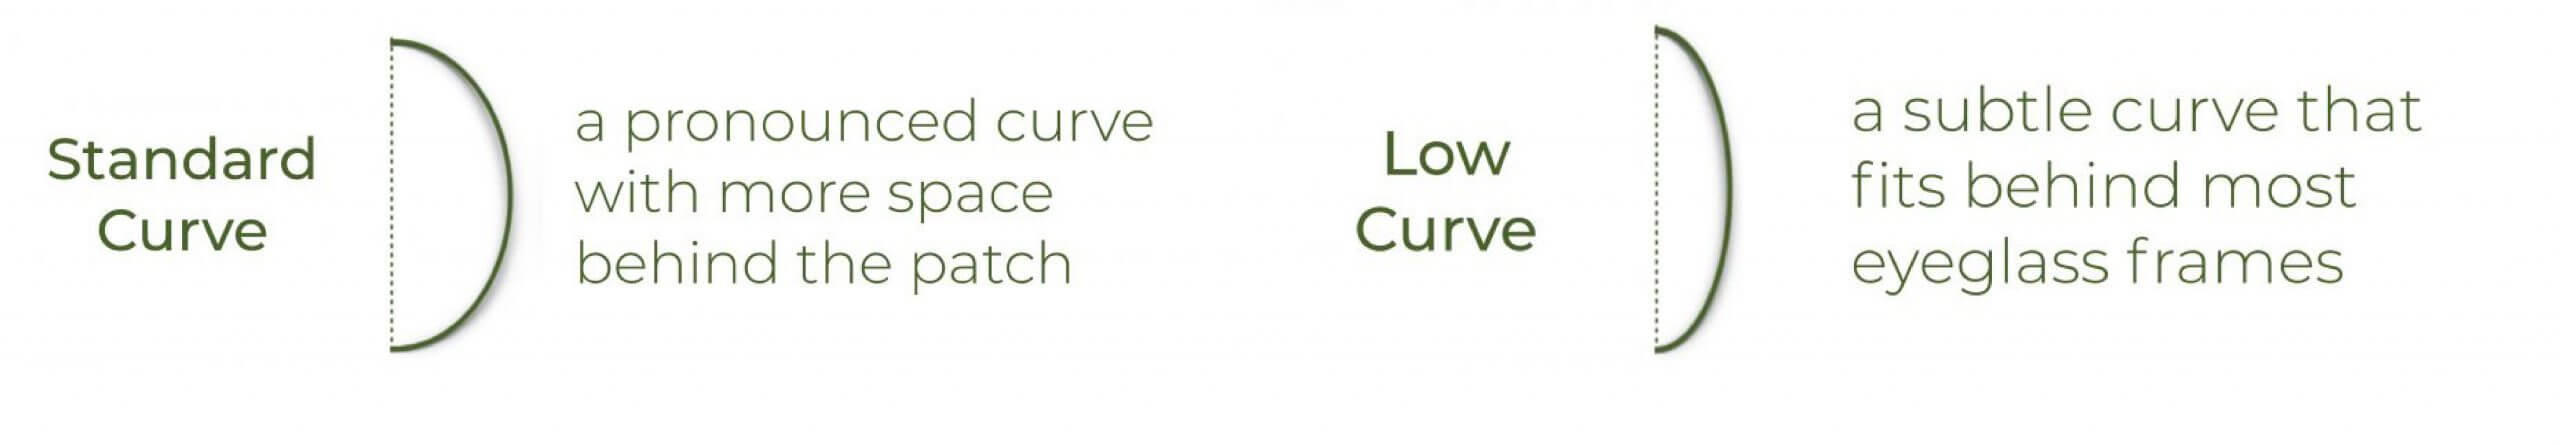 illustration showing standard and low curves